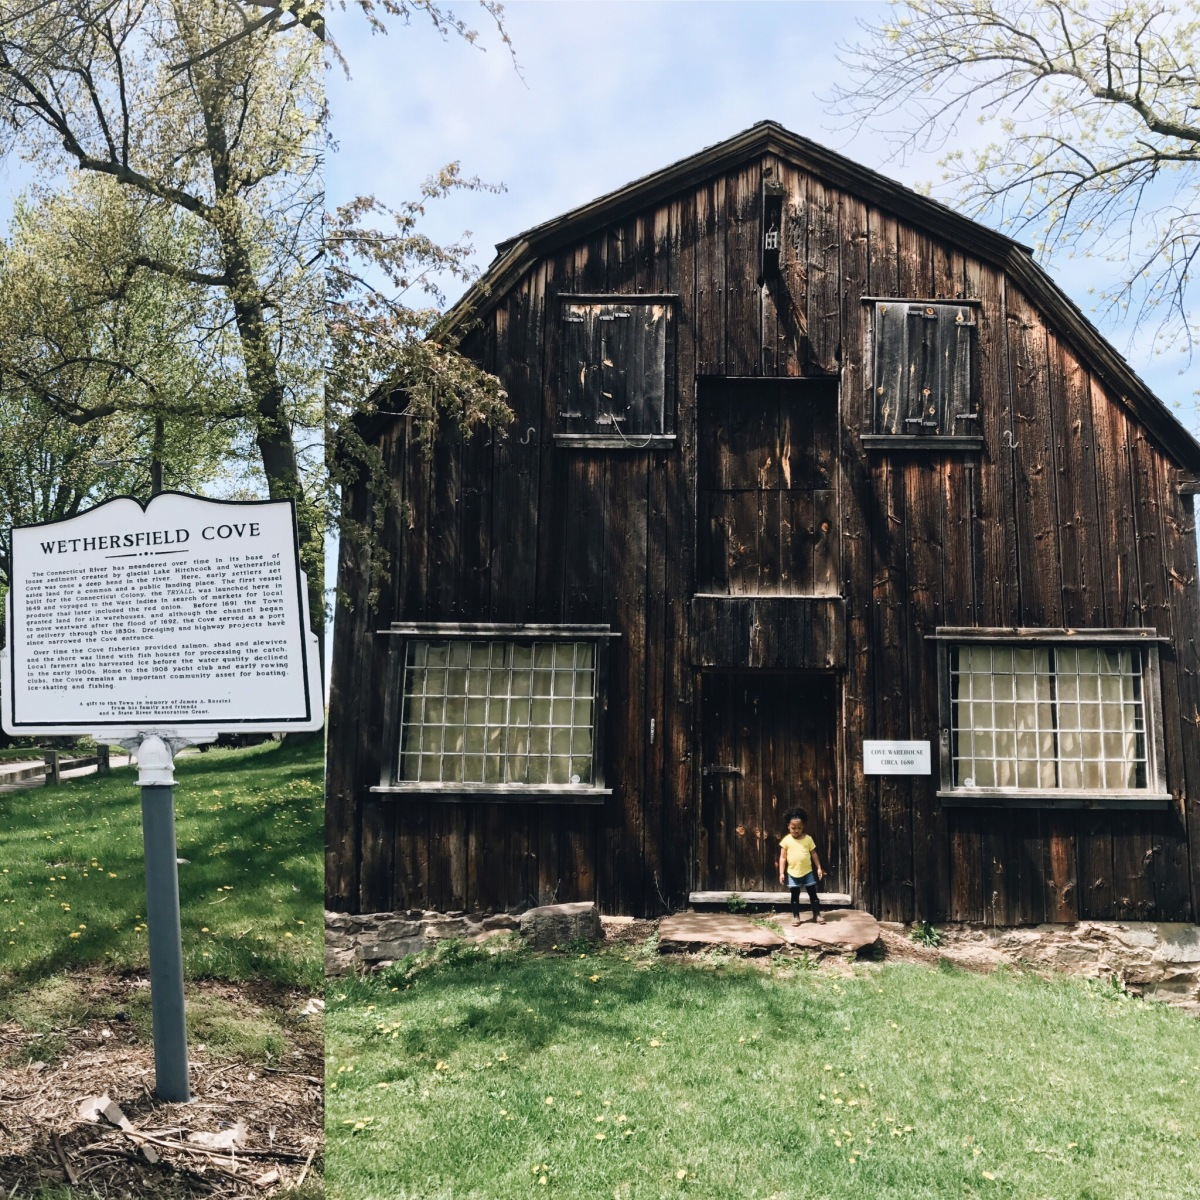 Day In The Life: OldWethersfield